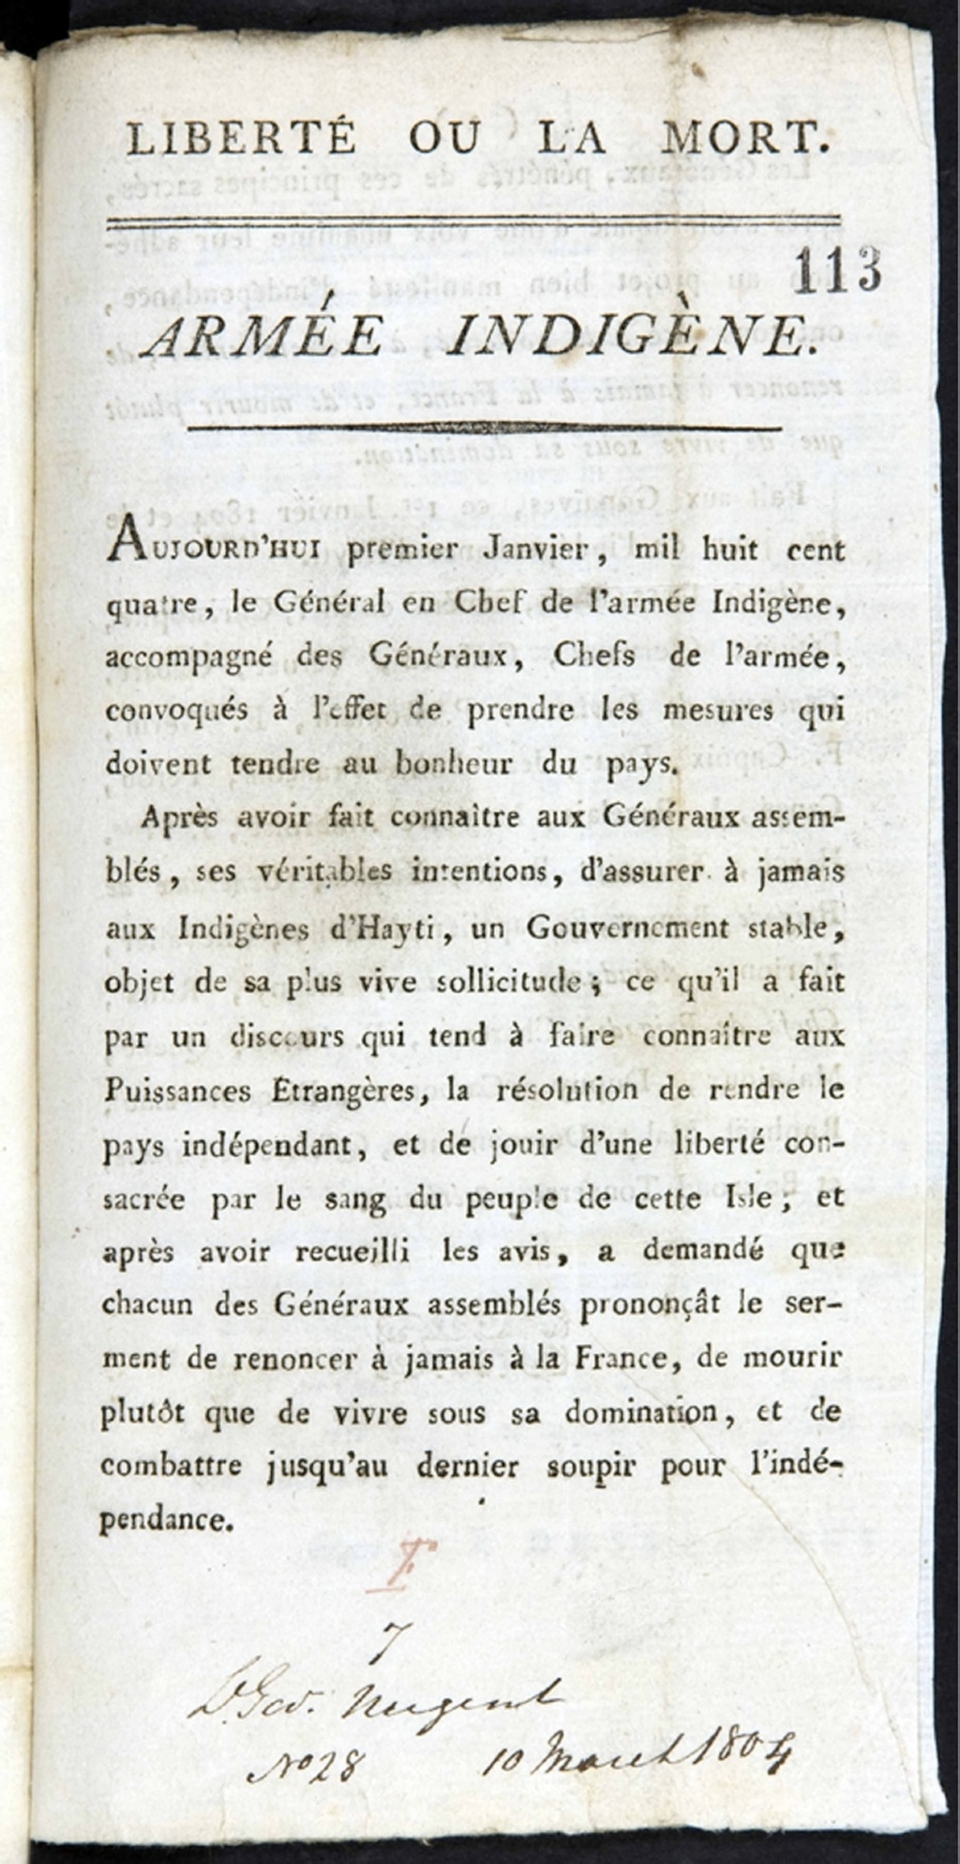 Haiti's Declaration of Independence: Digging for Lost